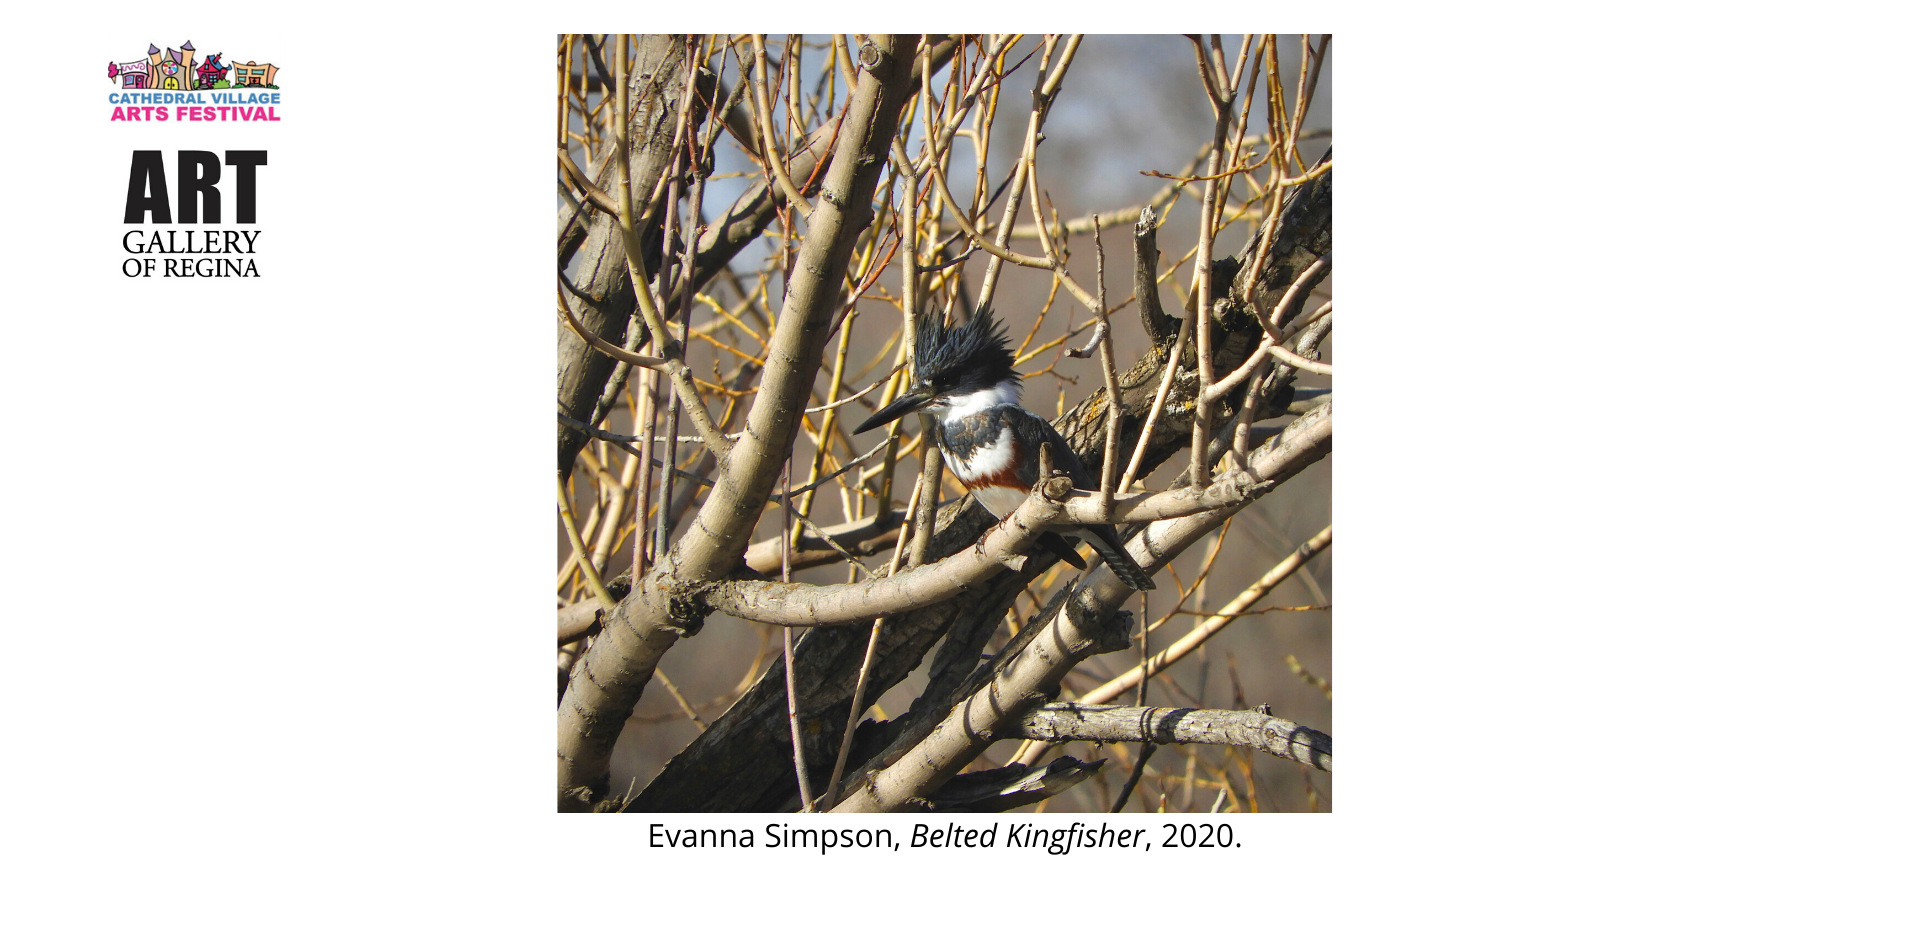 Evanna Simpson,Belted Kingfisher, 2020.